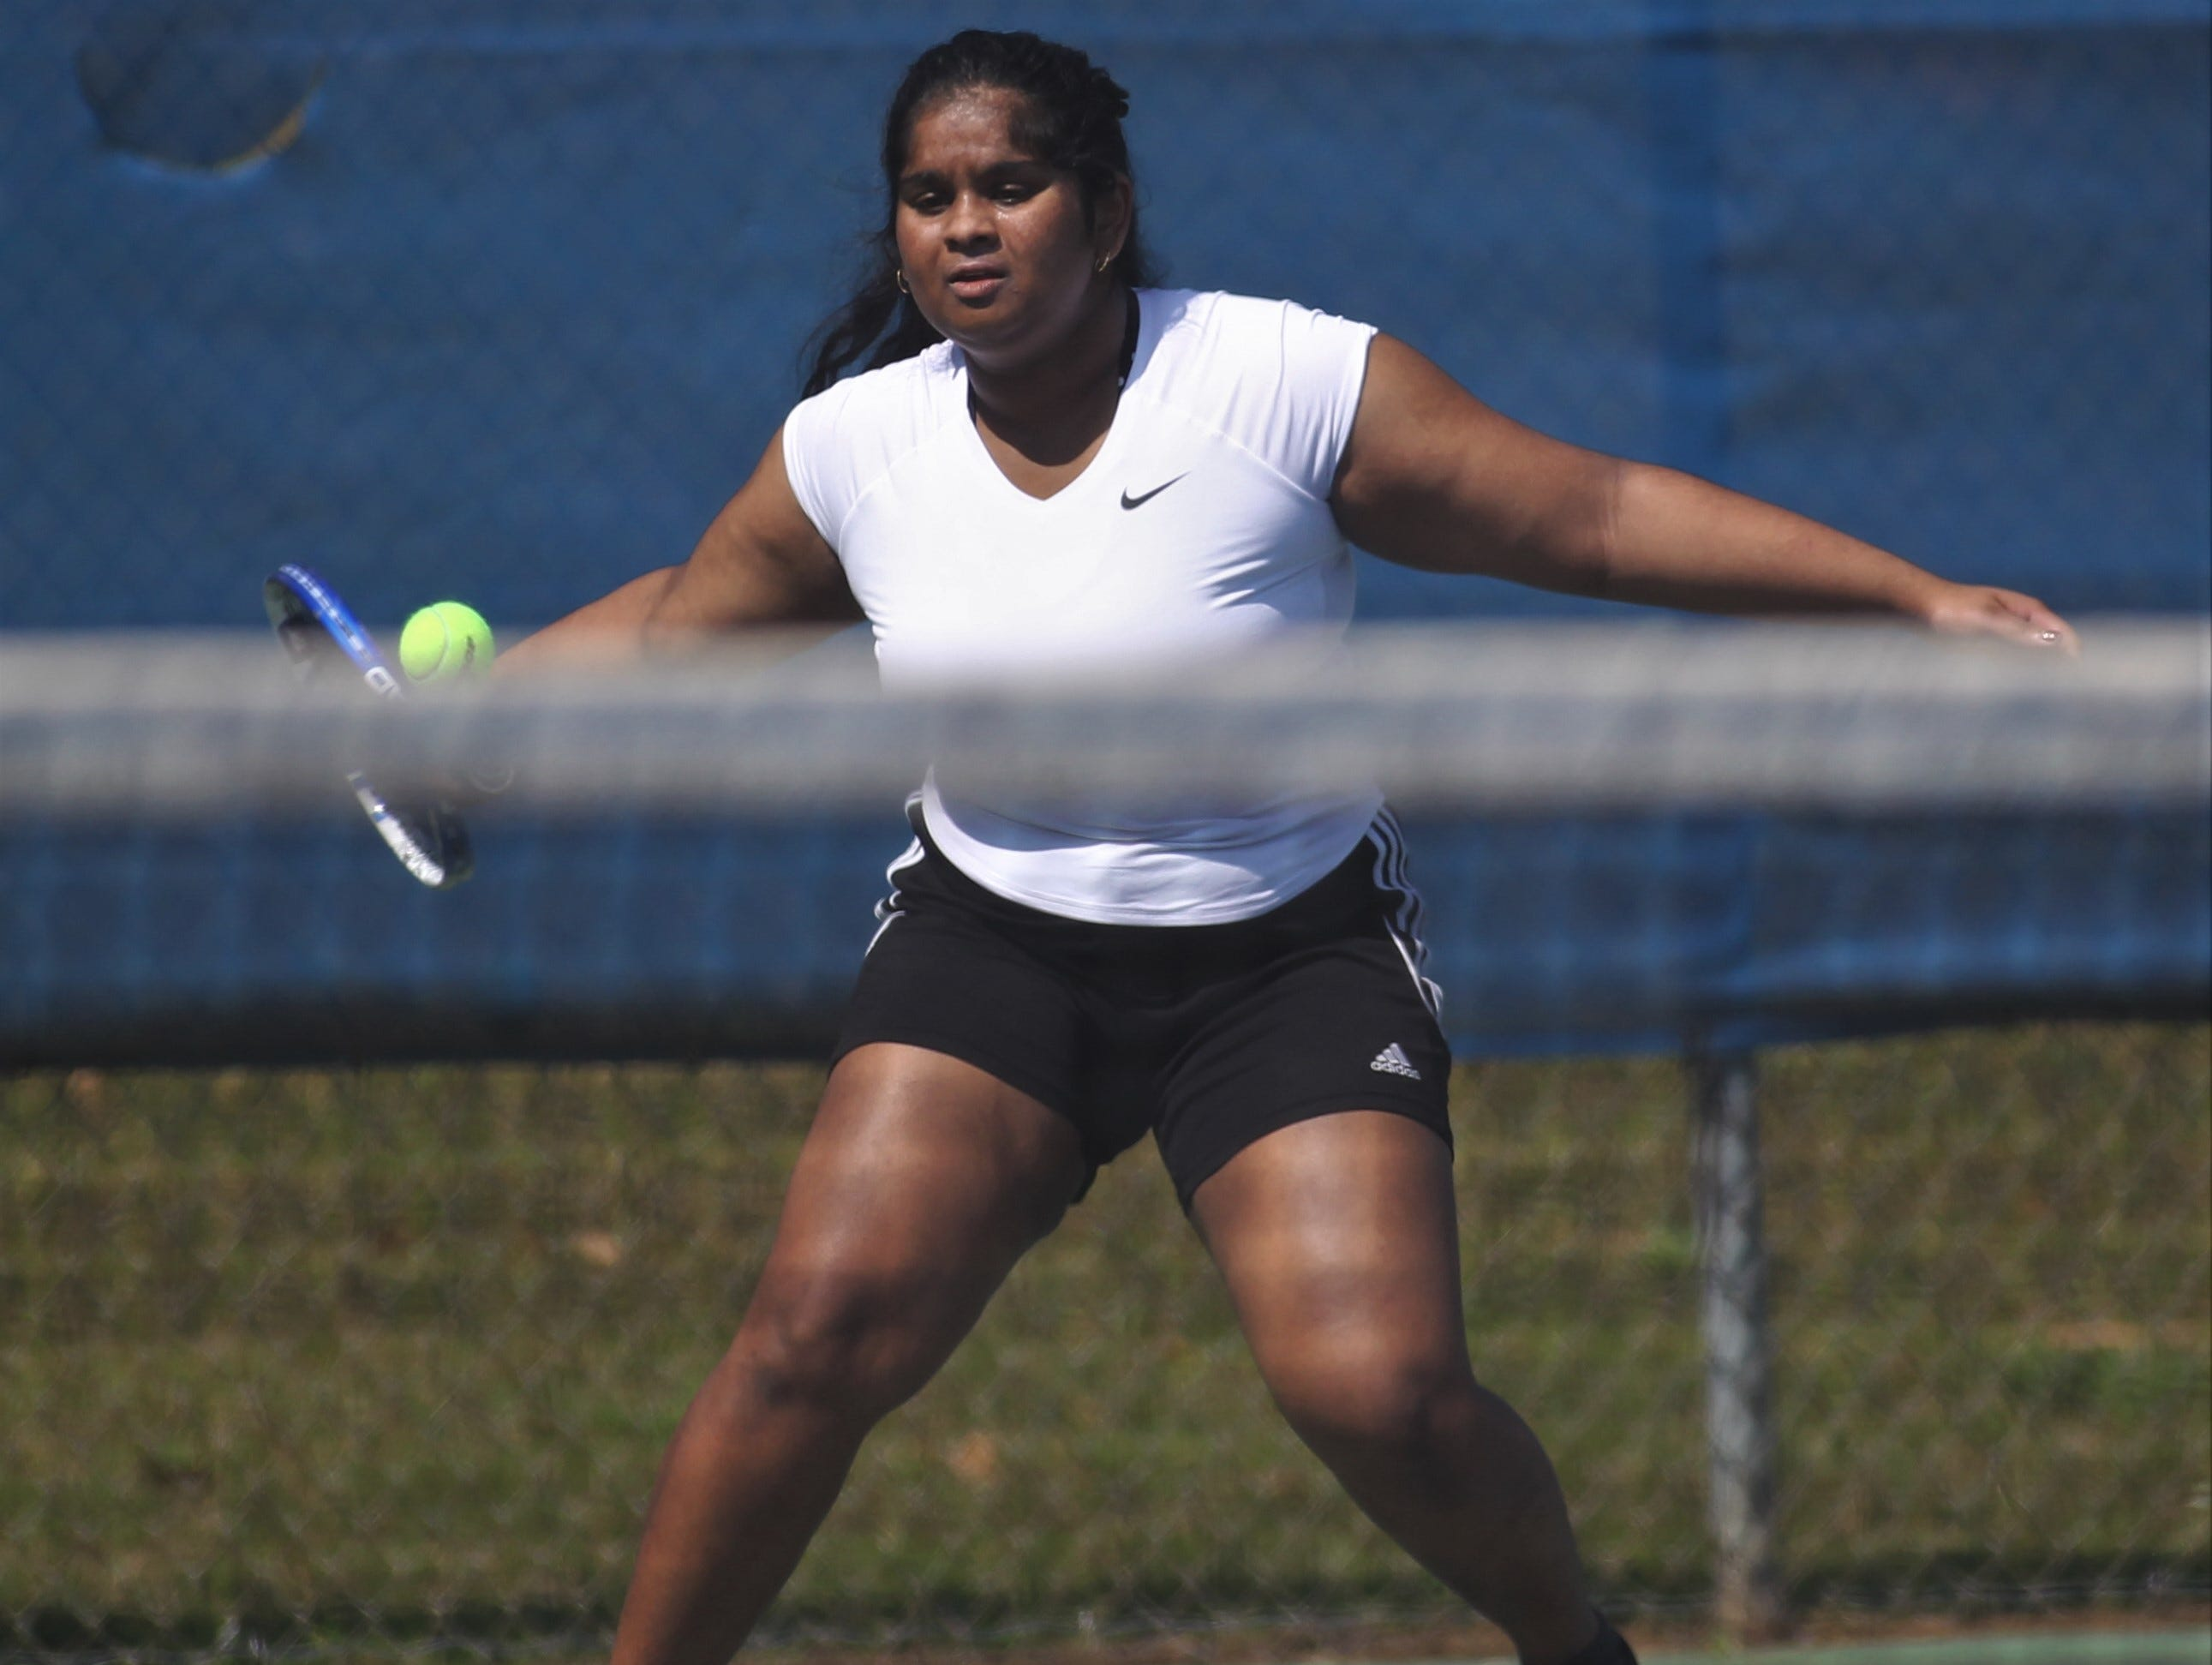 Florida High plays during the boys and girls tennis 2019 City Tournament at Tom Brown Park on March 12, 2019.